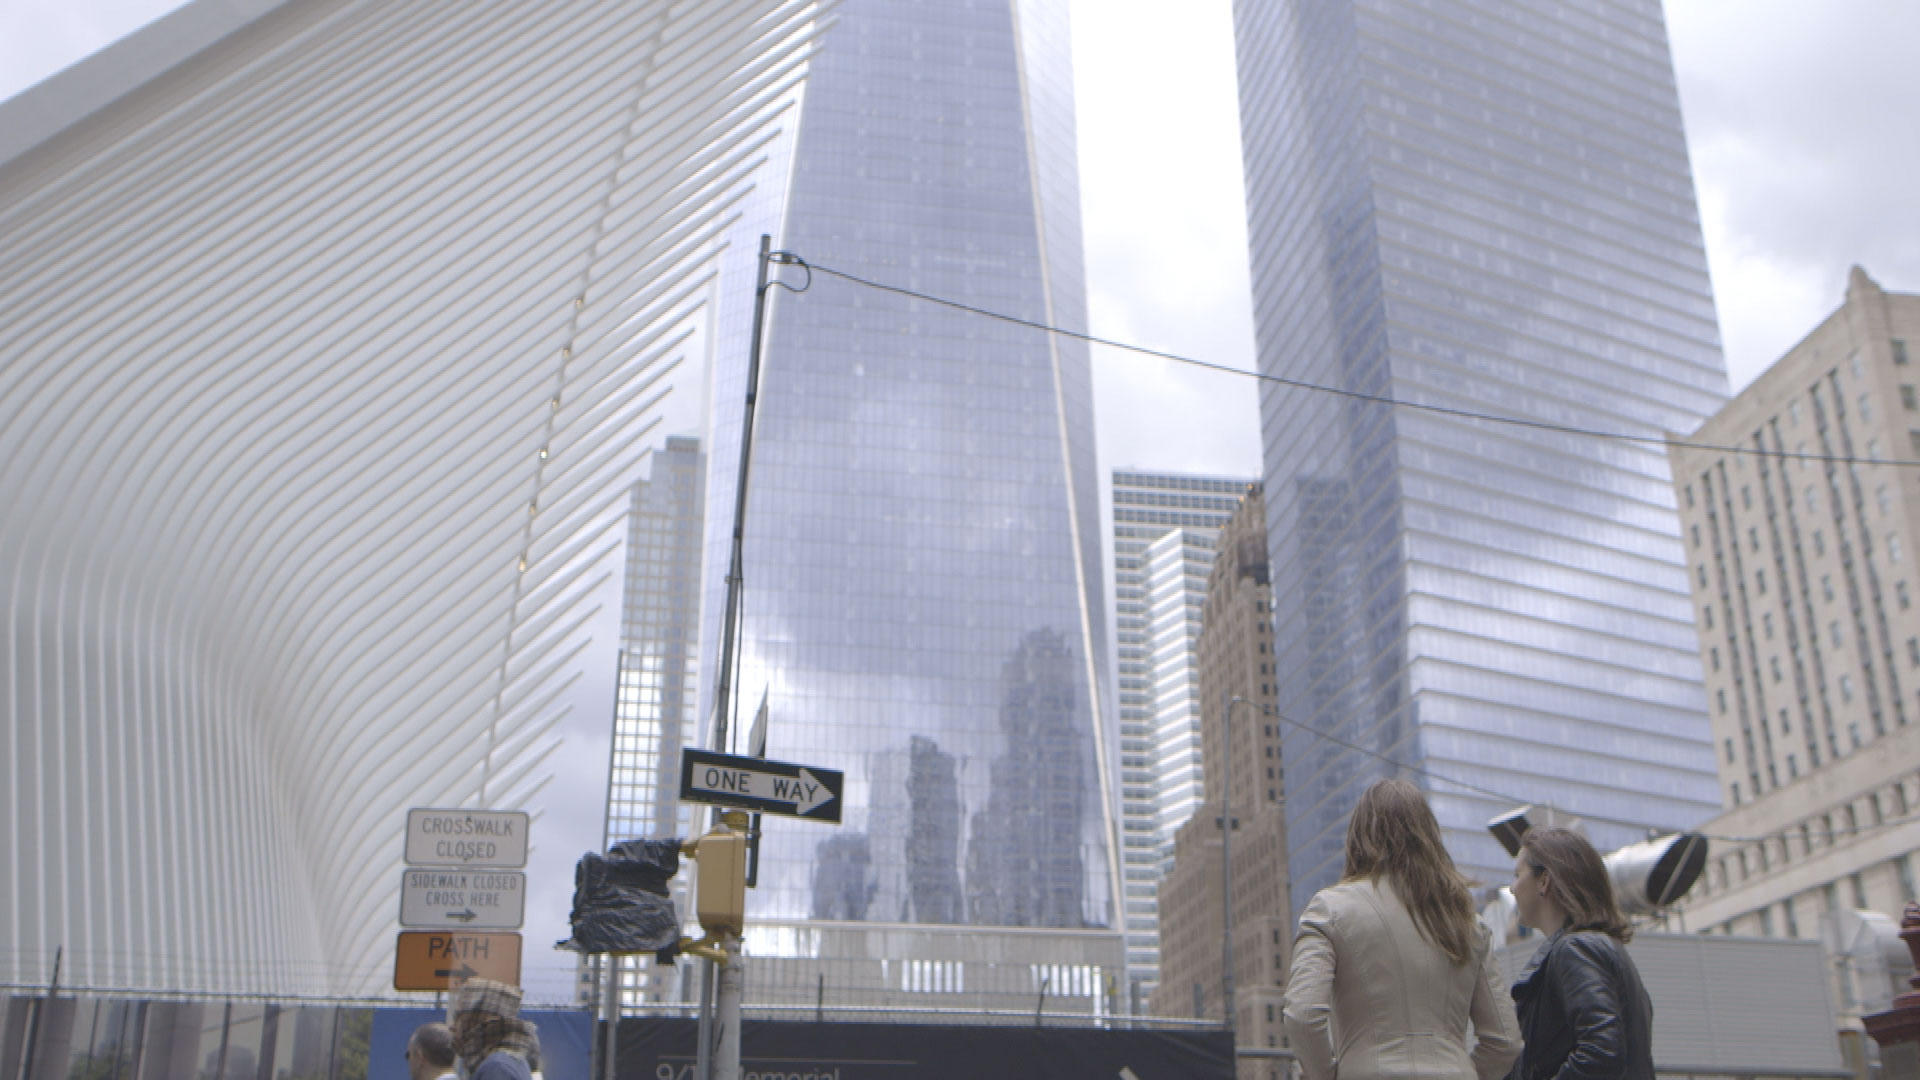 History Channel to screen 9/11 documentary | theluvvie